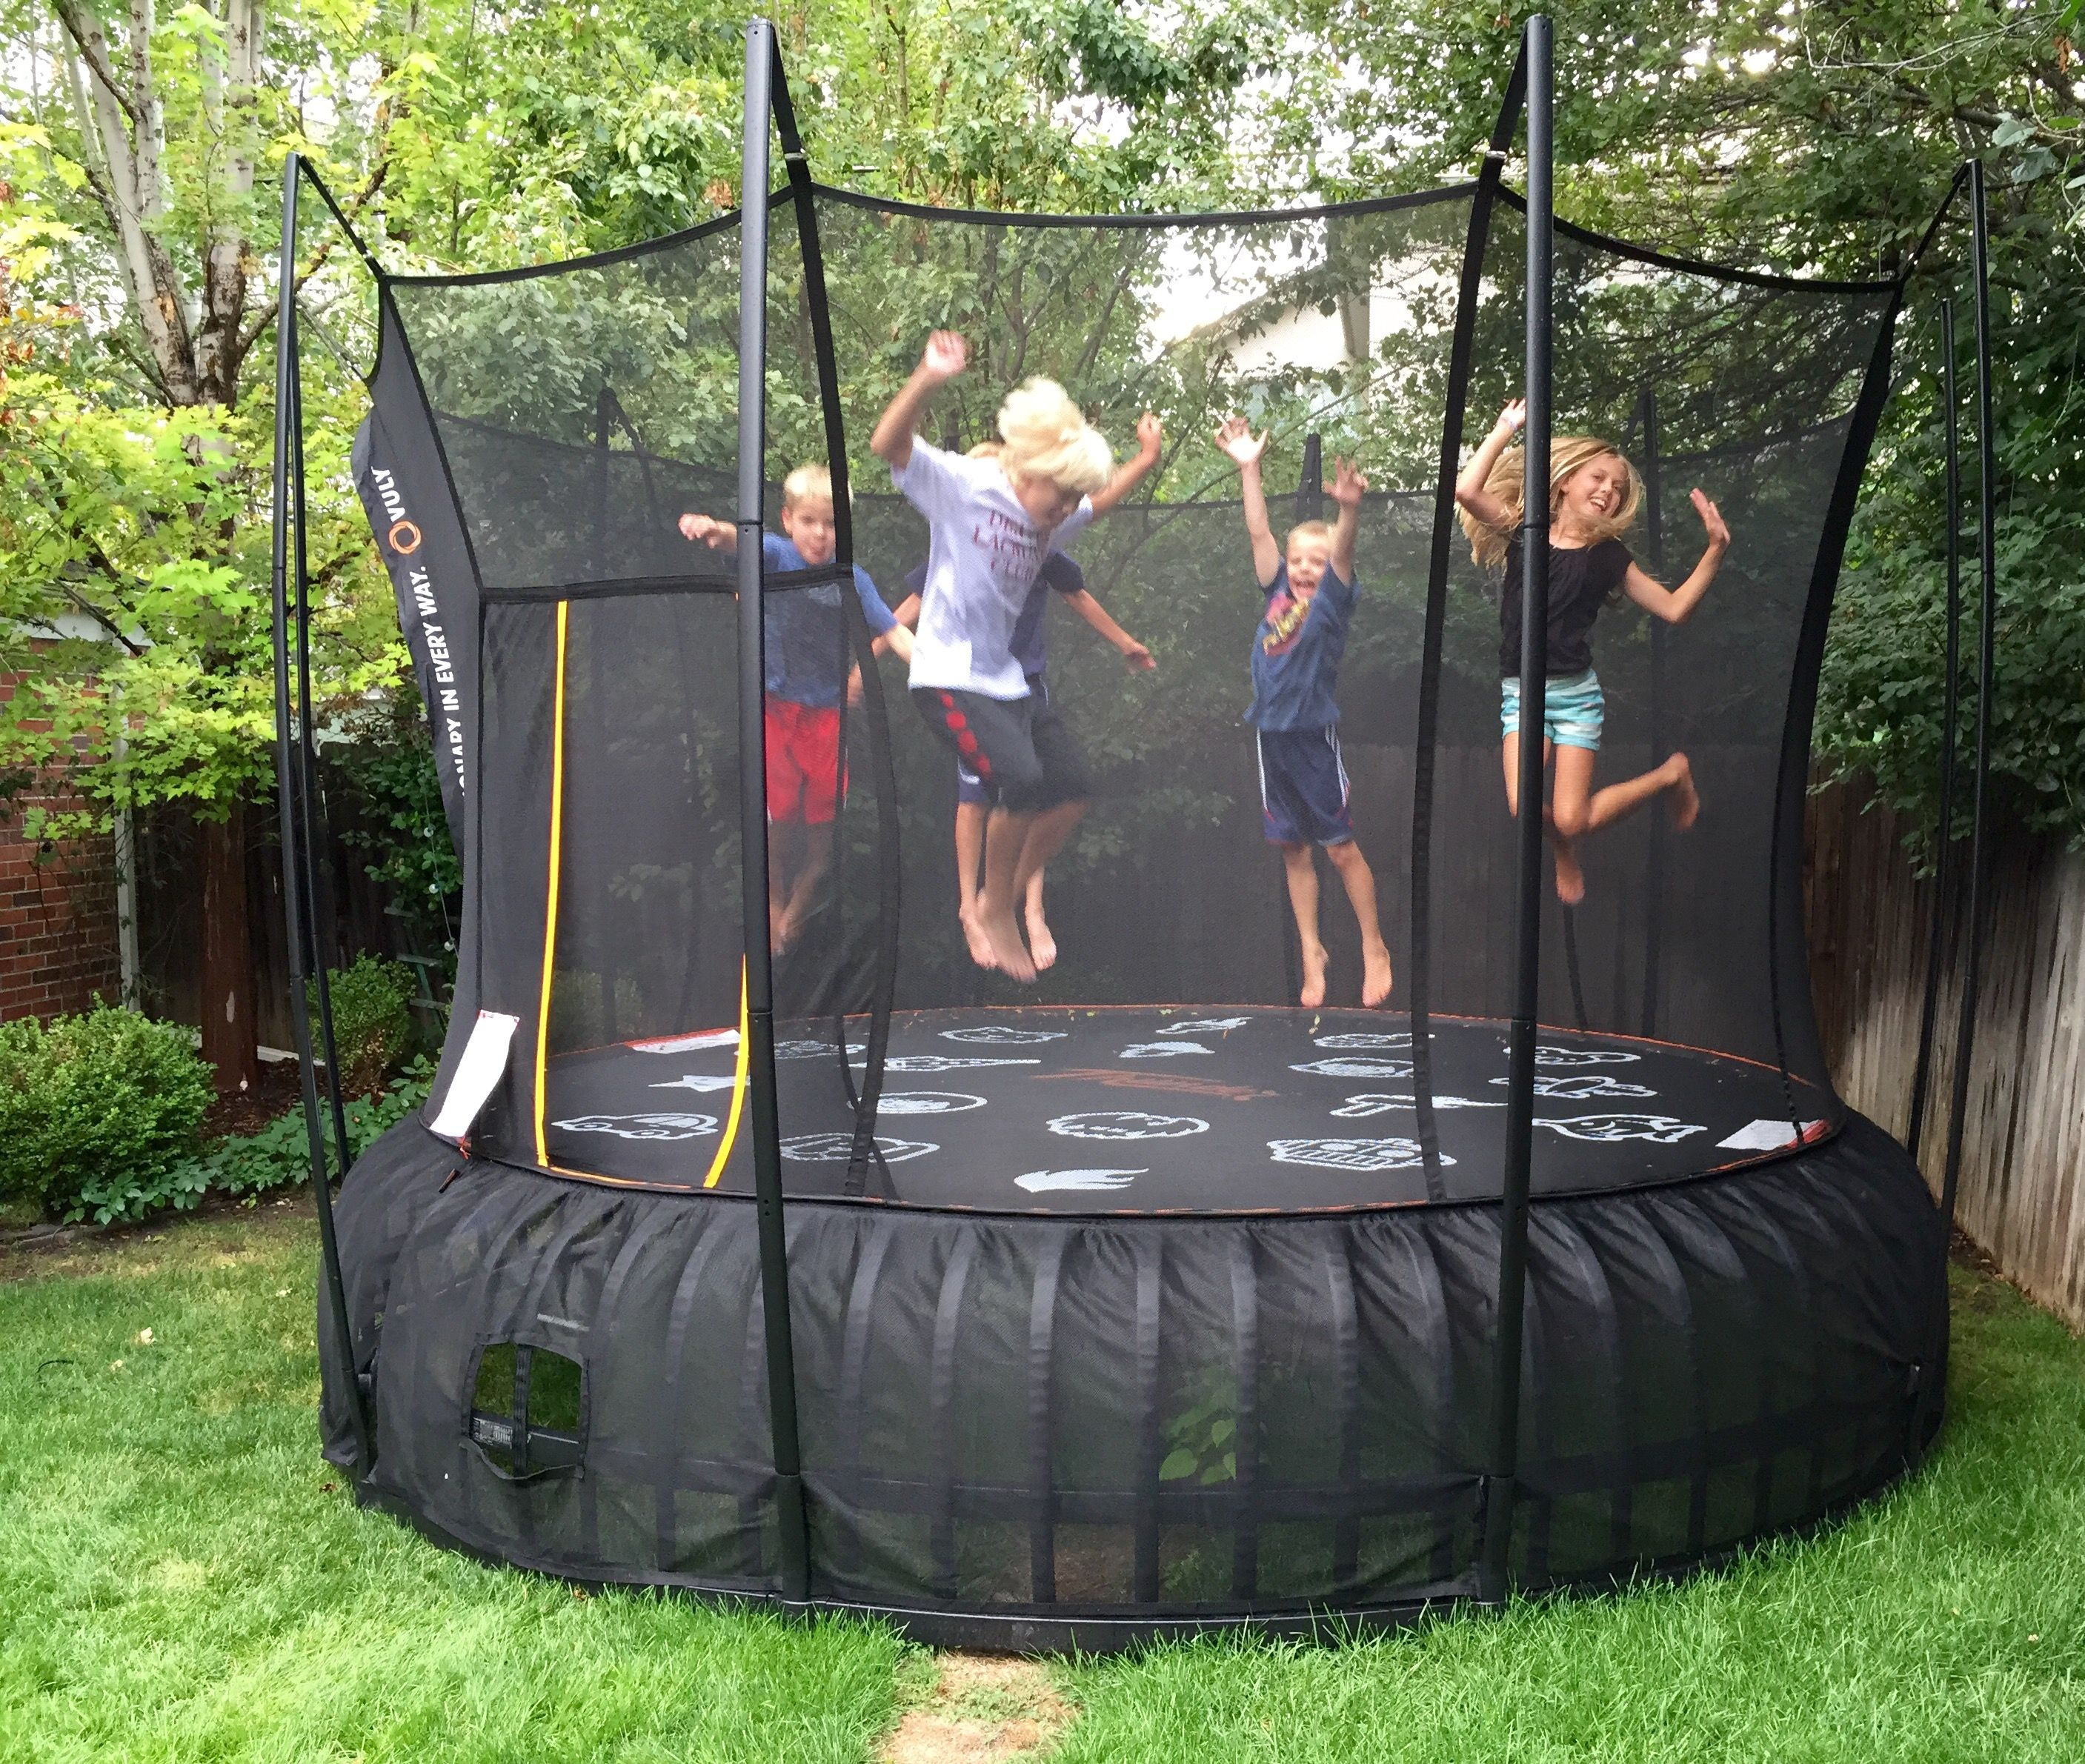 Vuly Trampolines Has The Strongest Spring Free Design. The